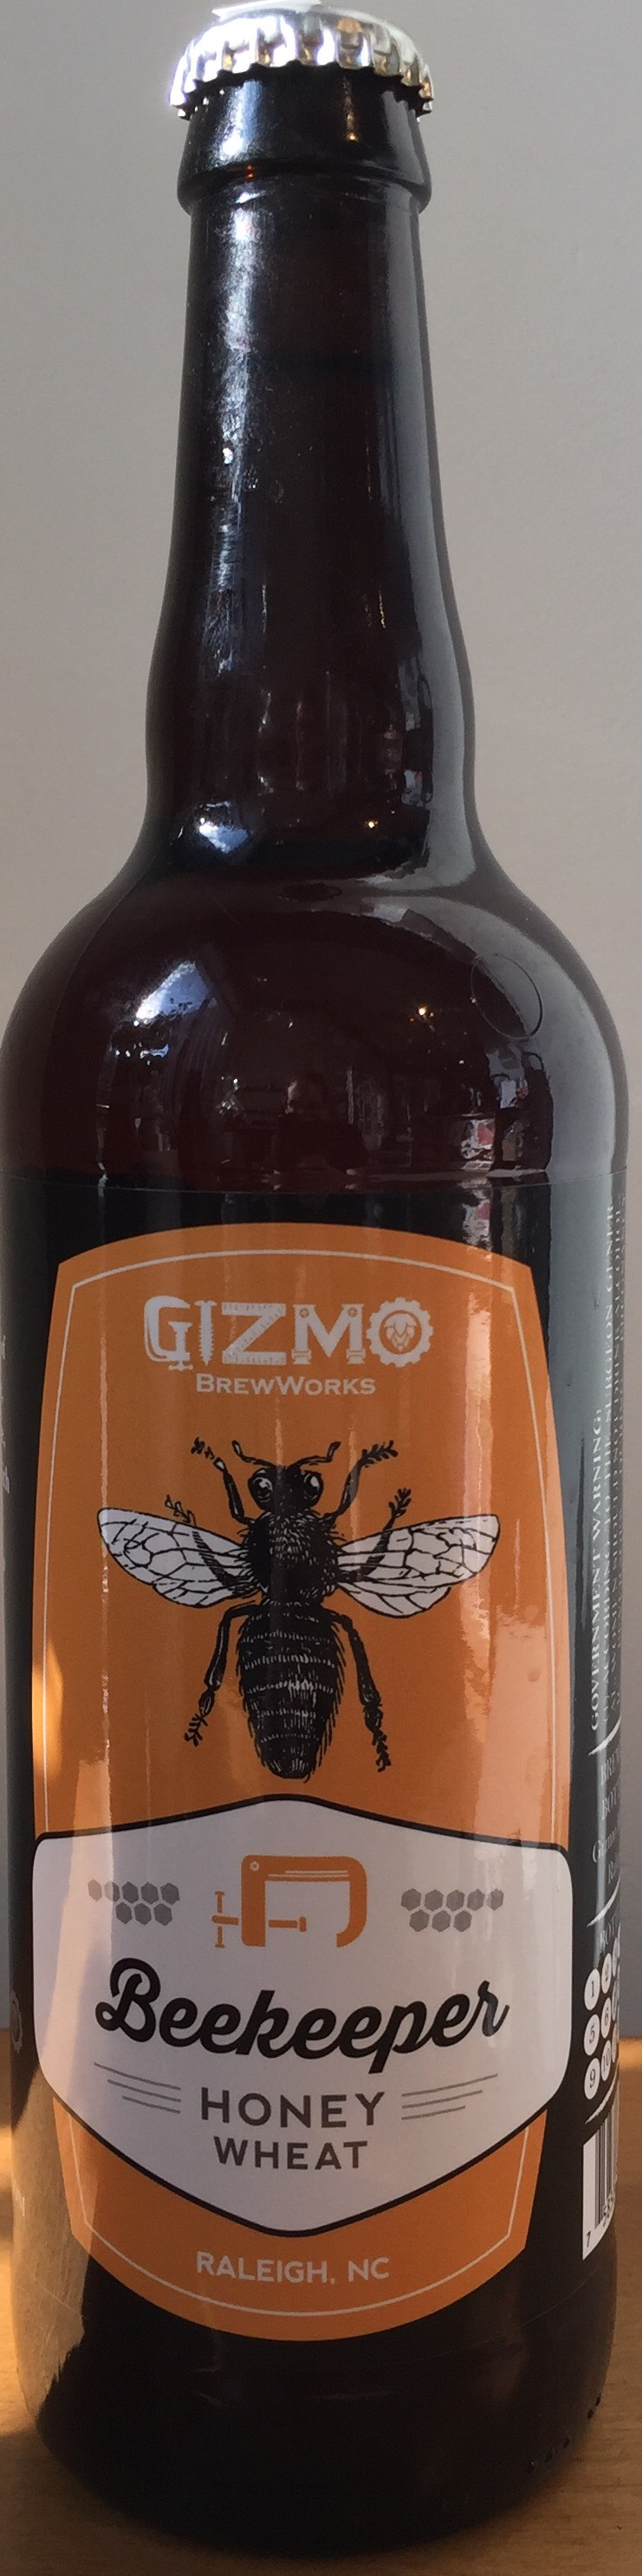 Gizmo Beekeeper Honey Wheat